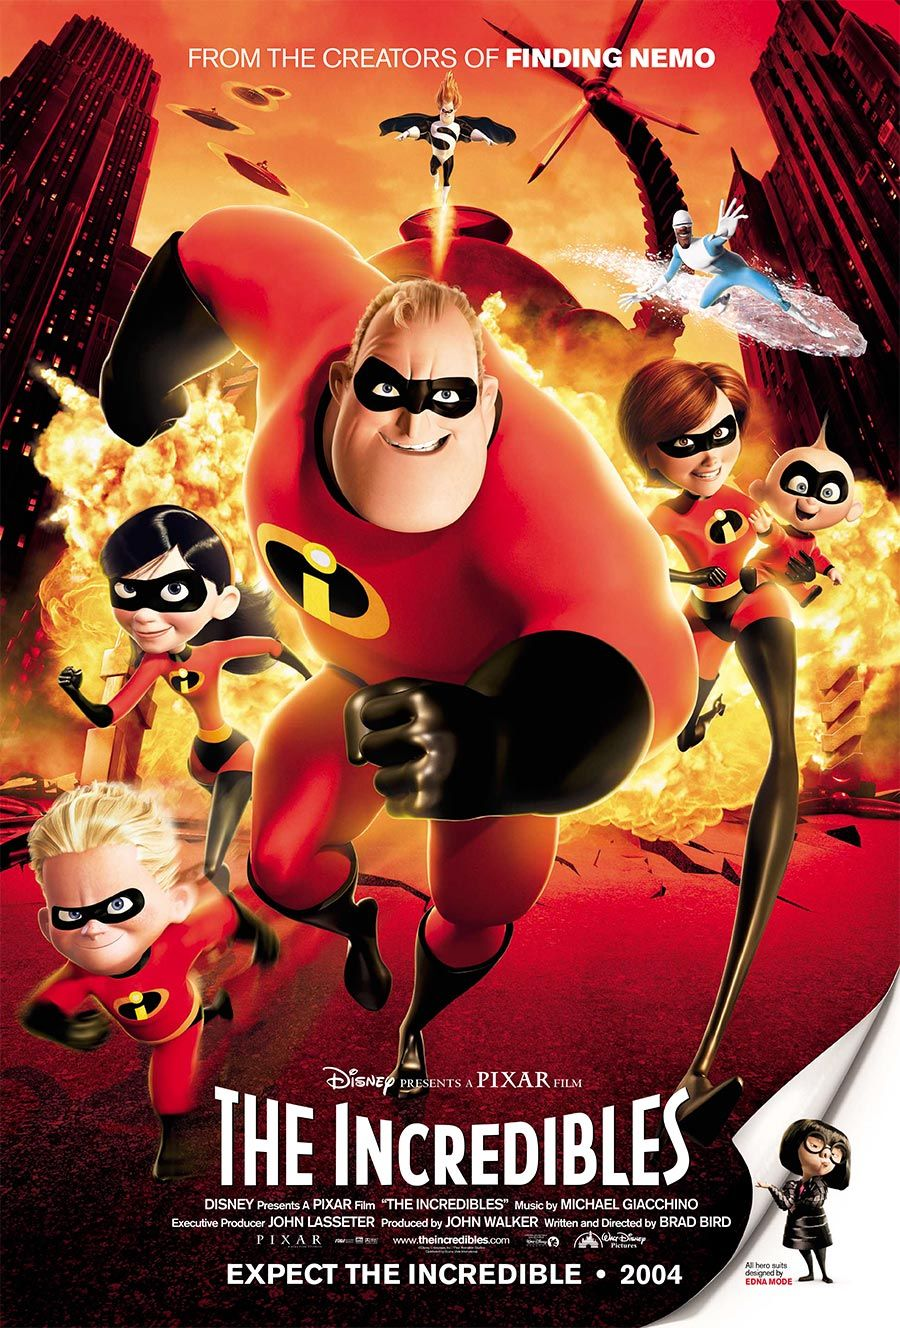 Today In Disney History Ten Years Ago The Incredibles Was First Released In Theaters Kid Movies The Incredibles 2004 Kids Movies